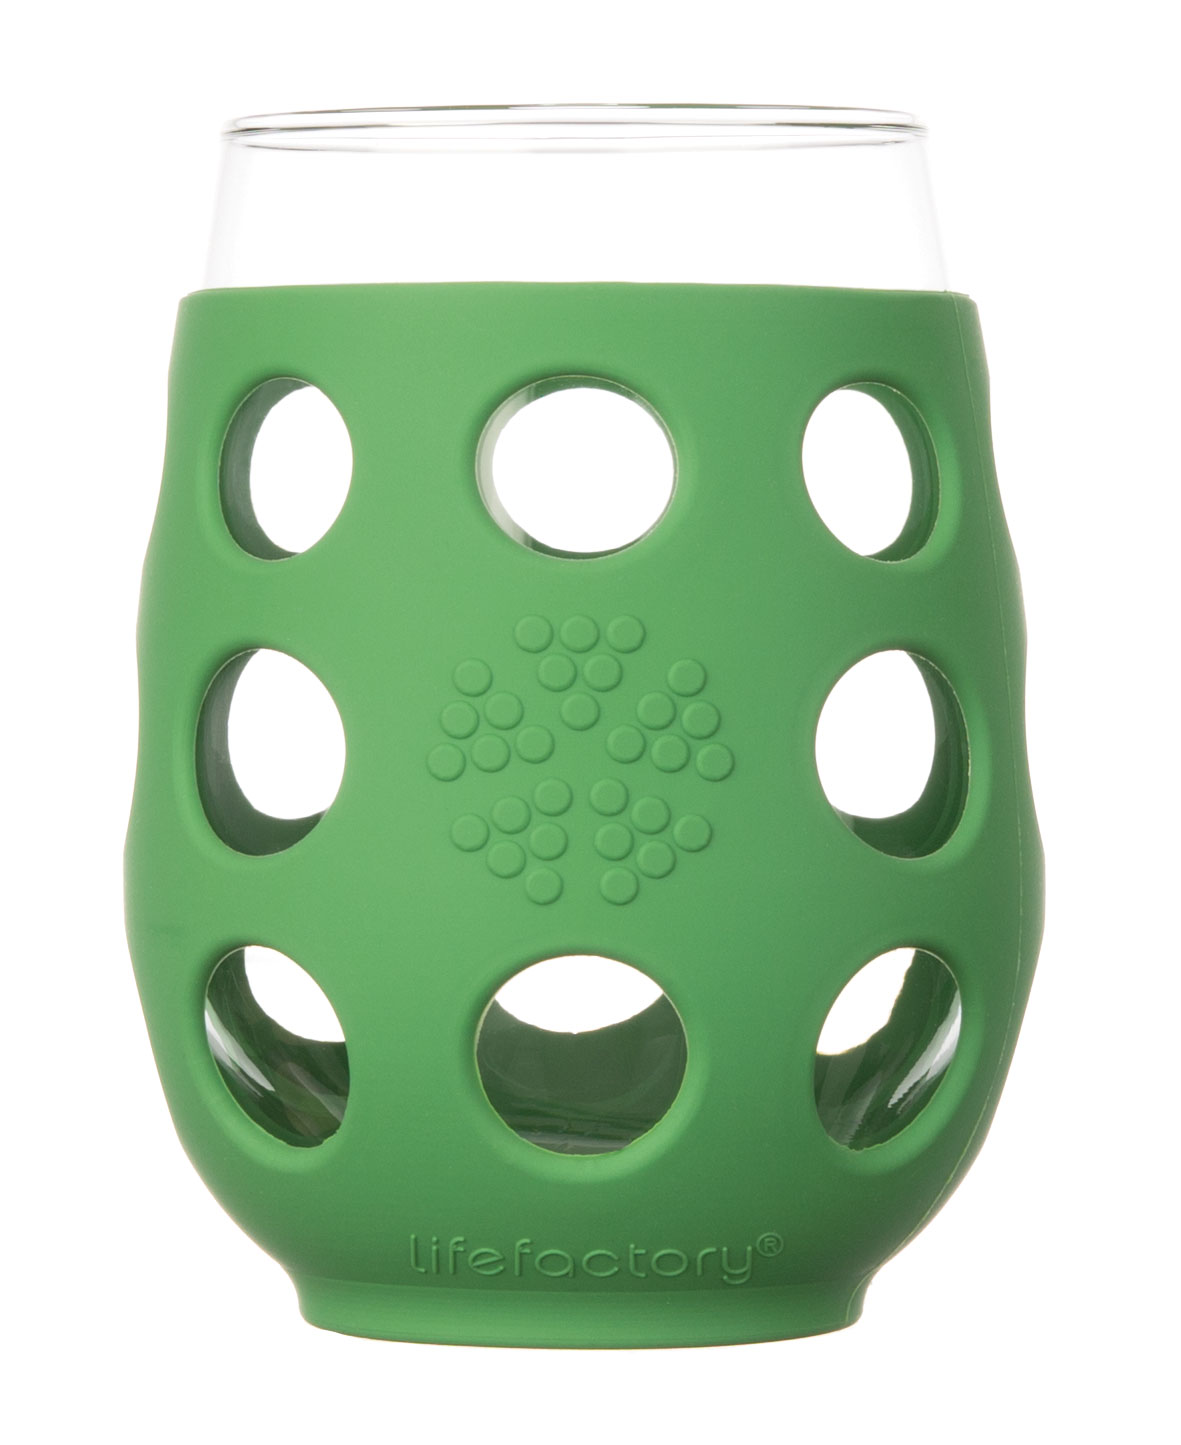 Lifefactory 17oz Wine Glass - 2pk - Grass Green